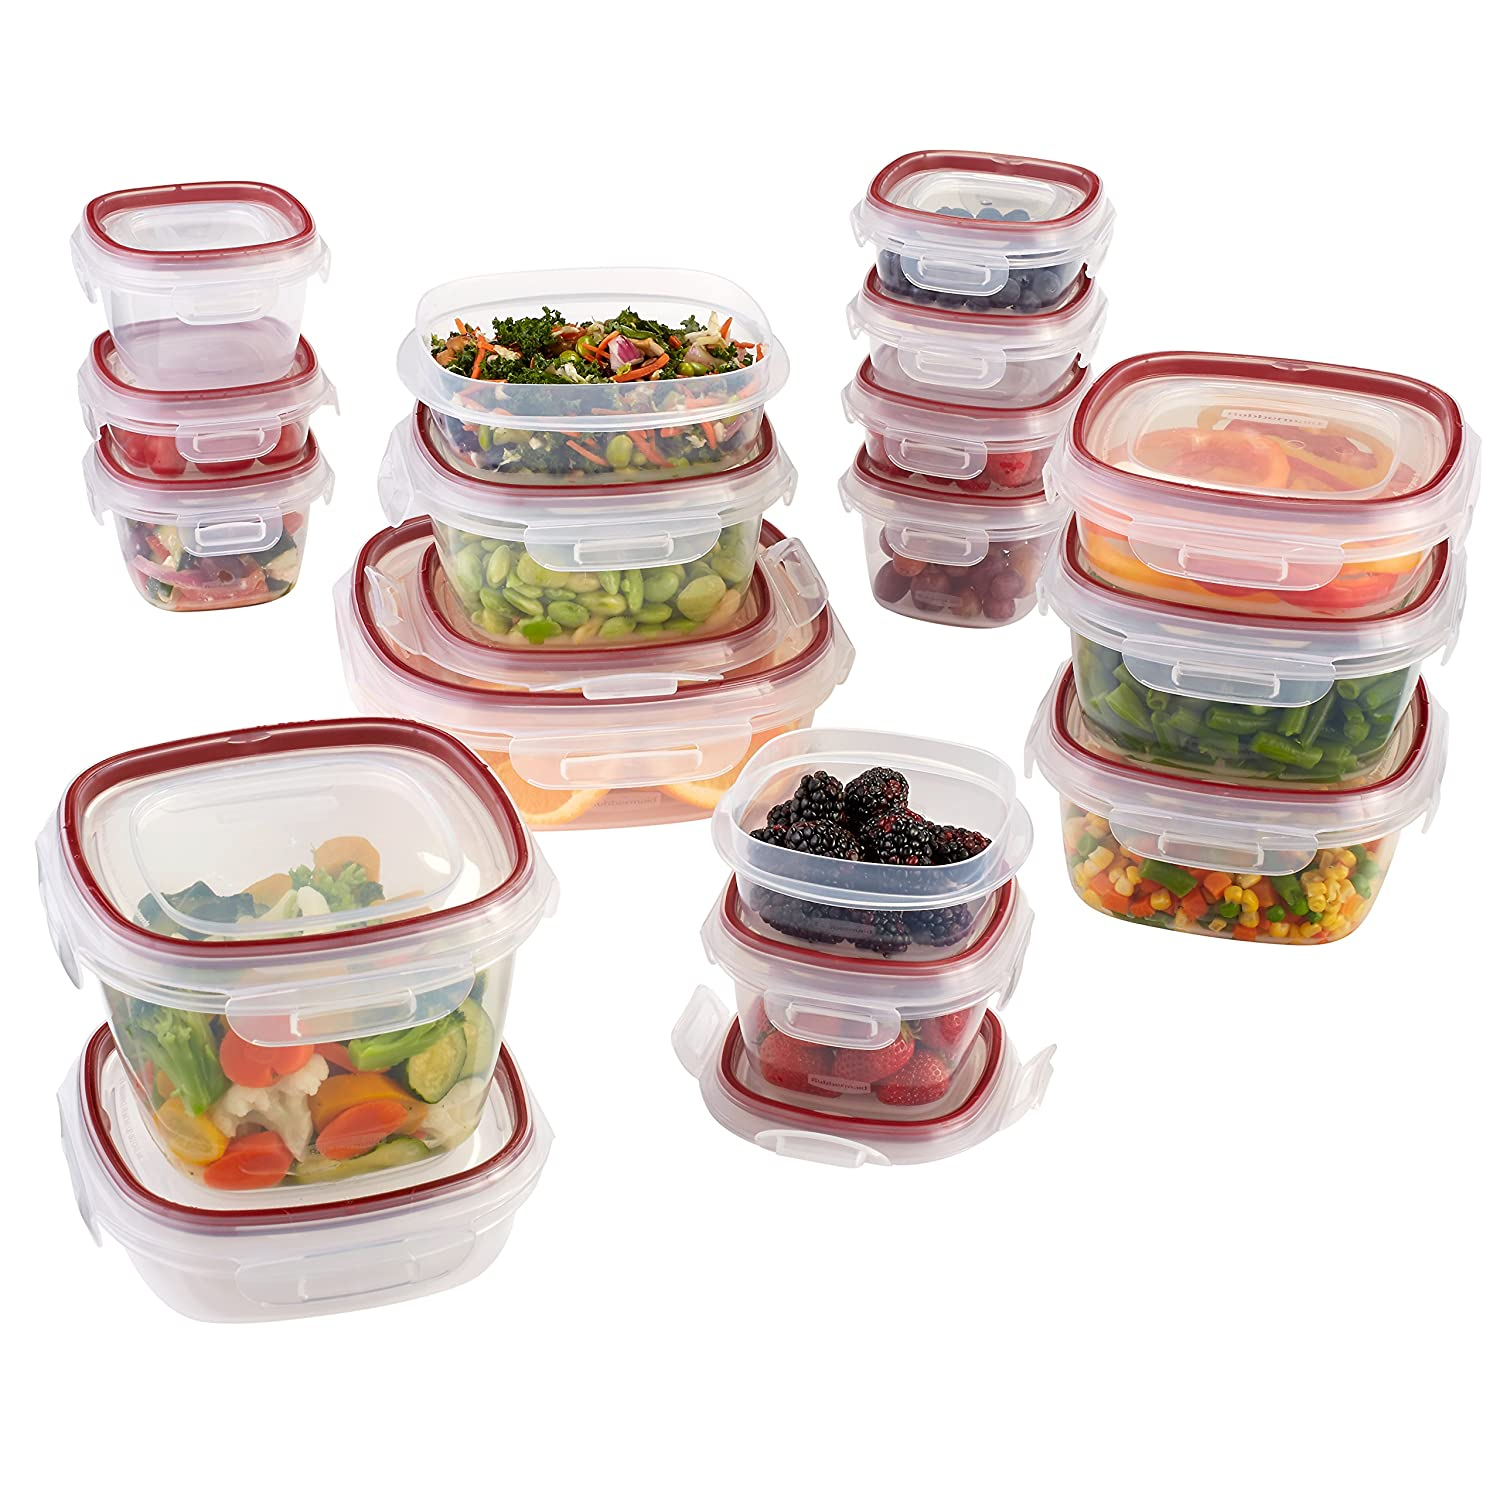 Rubbermaid Easy Find Lid Lock-Its Food Storage Container, 20-Piece Set (FG7N0500CIRED) 1842121